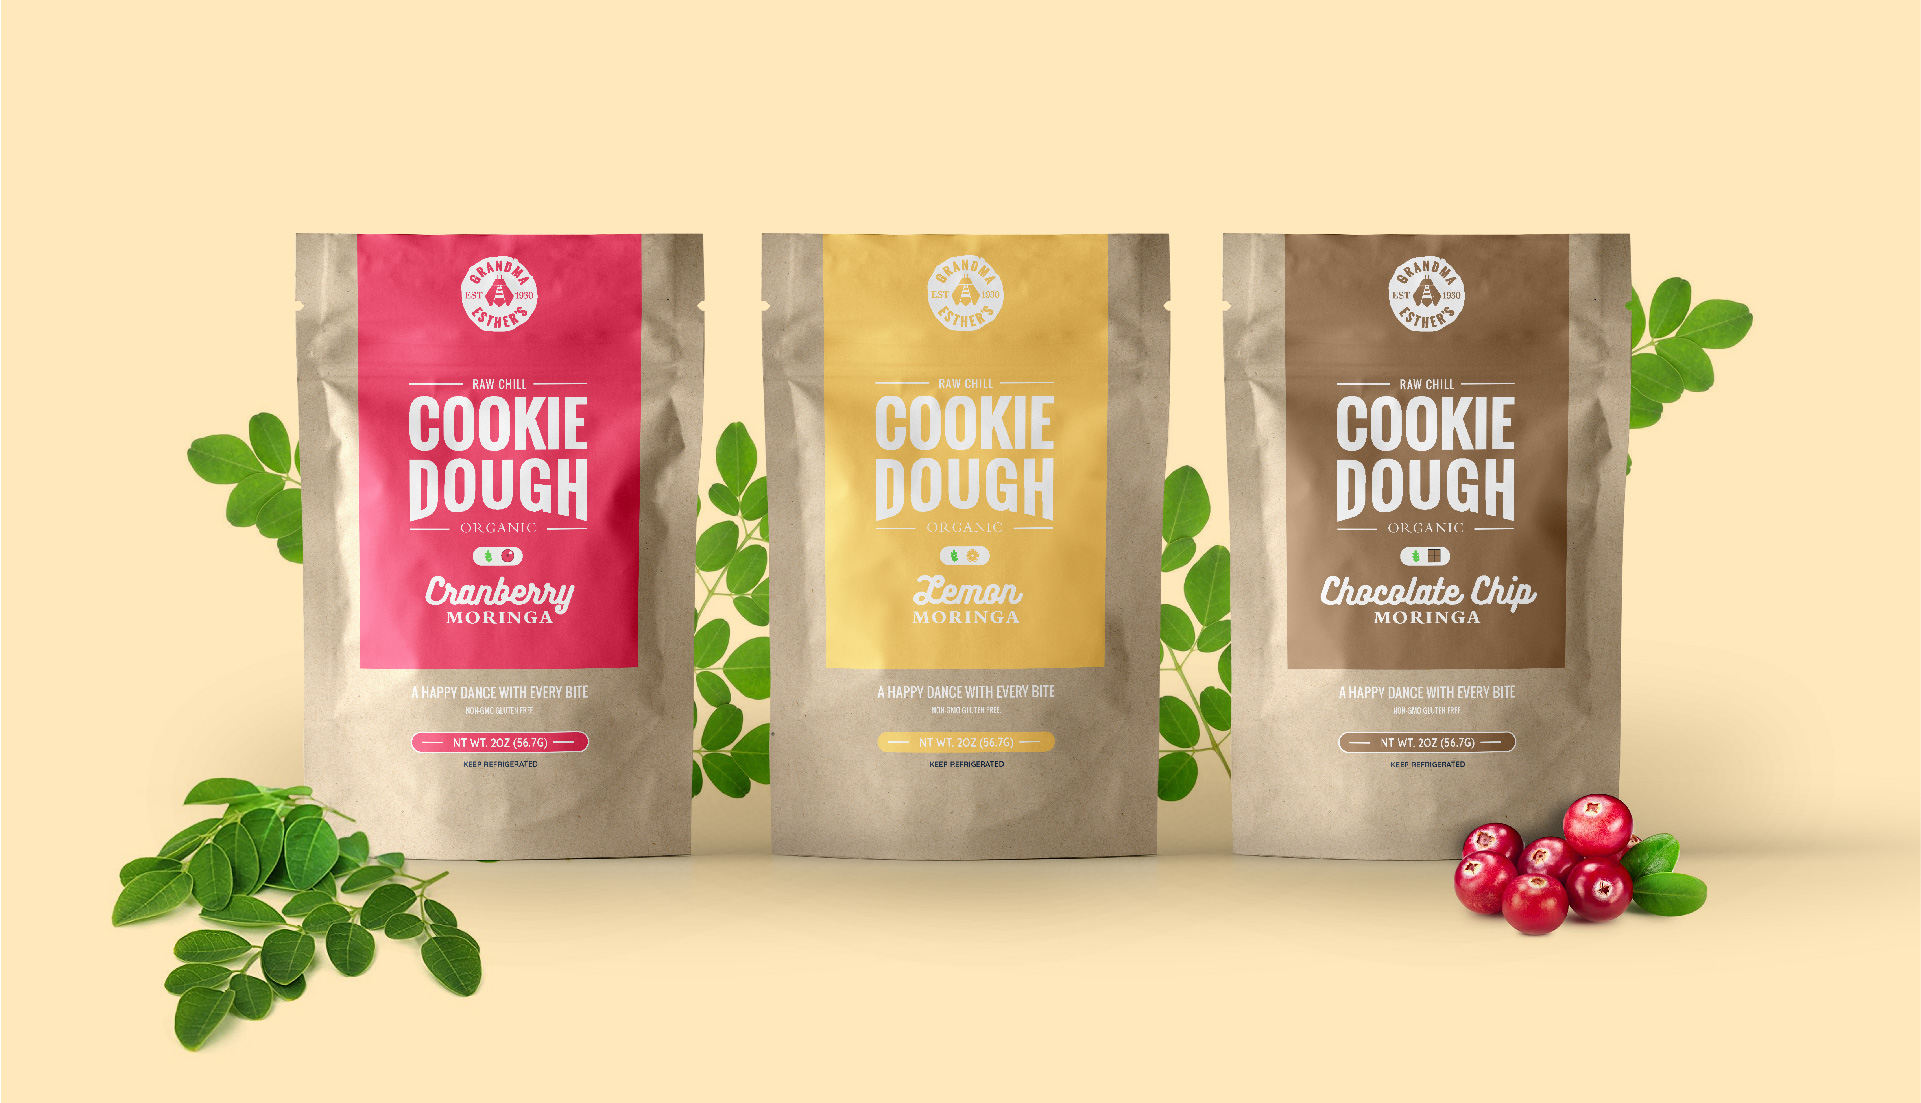 Raw Cookie Dough Organic Brand Packaging Design